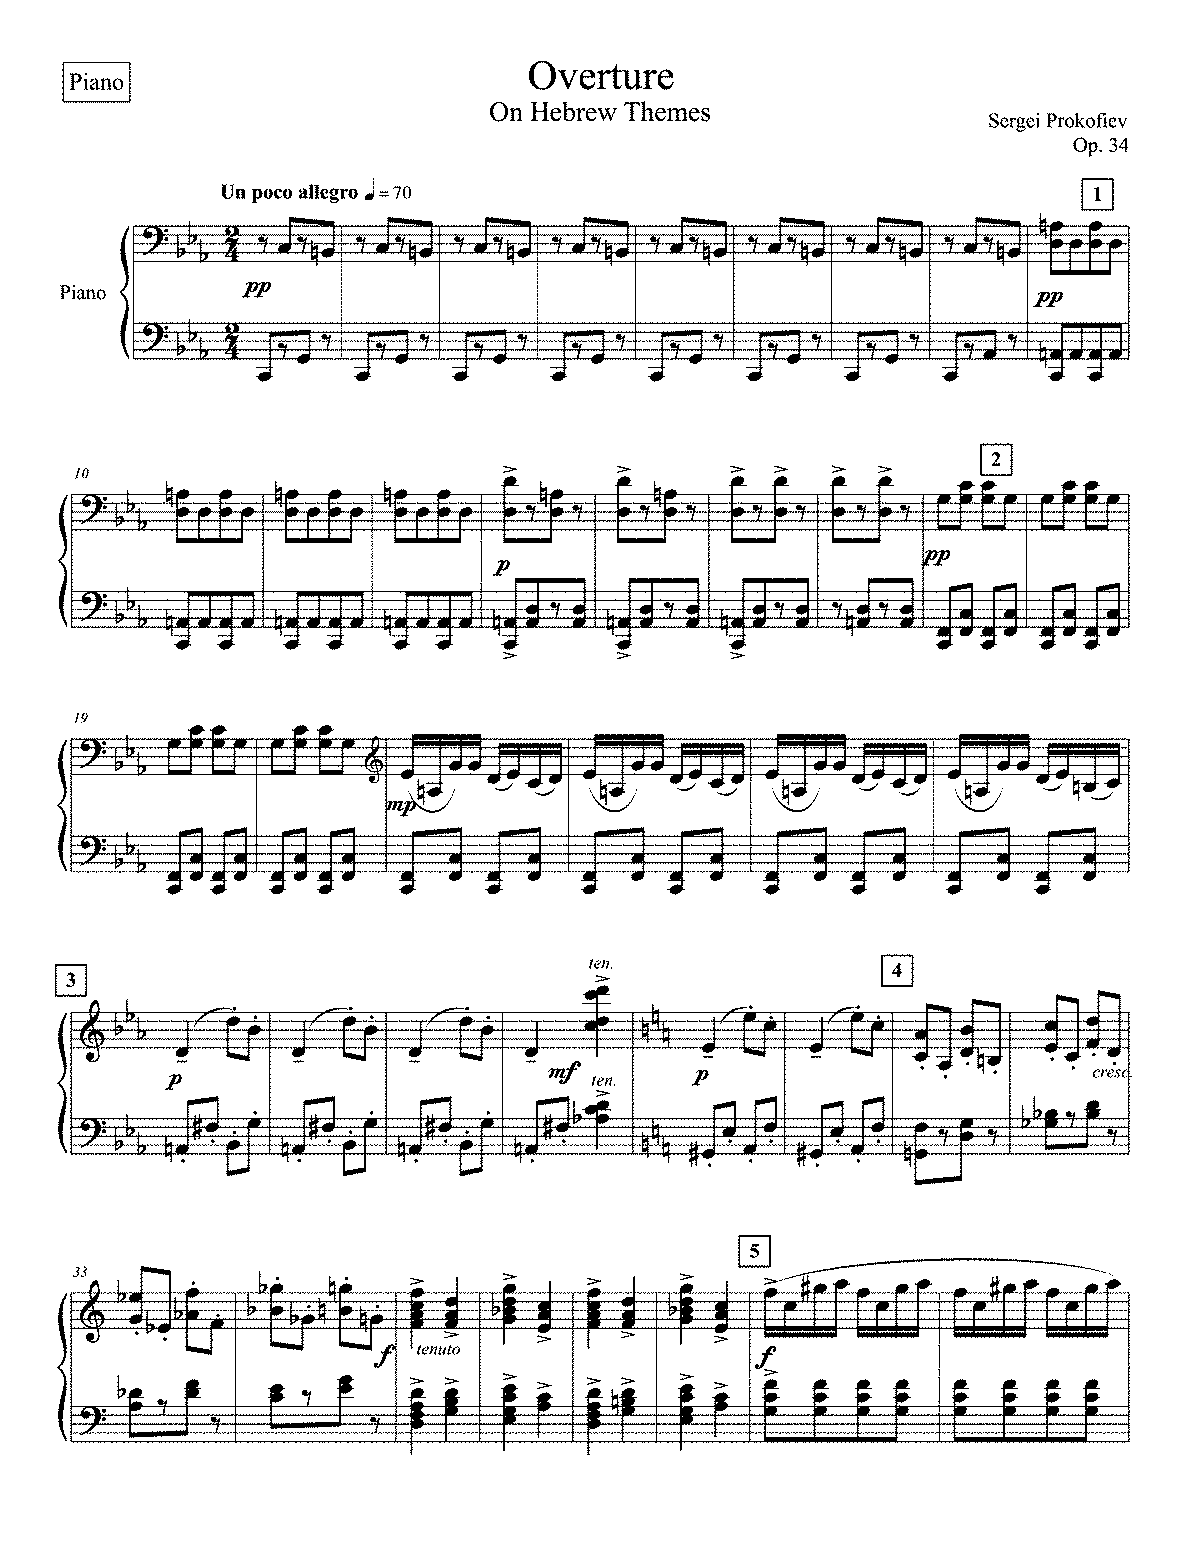 PMLP20759-Prokofiev-Overture On Hebrew Themes-Piano.pdf